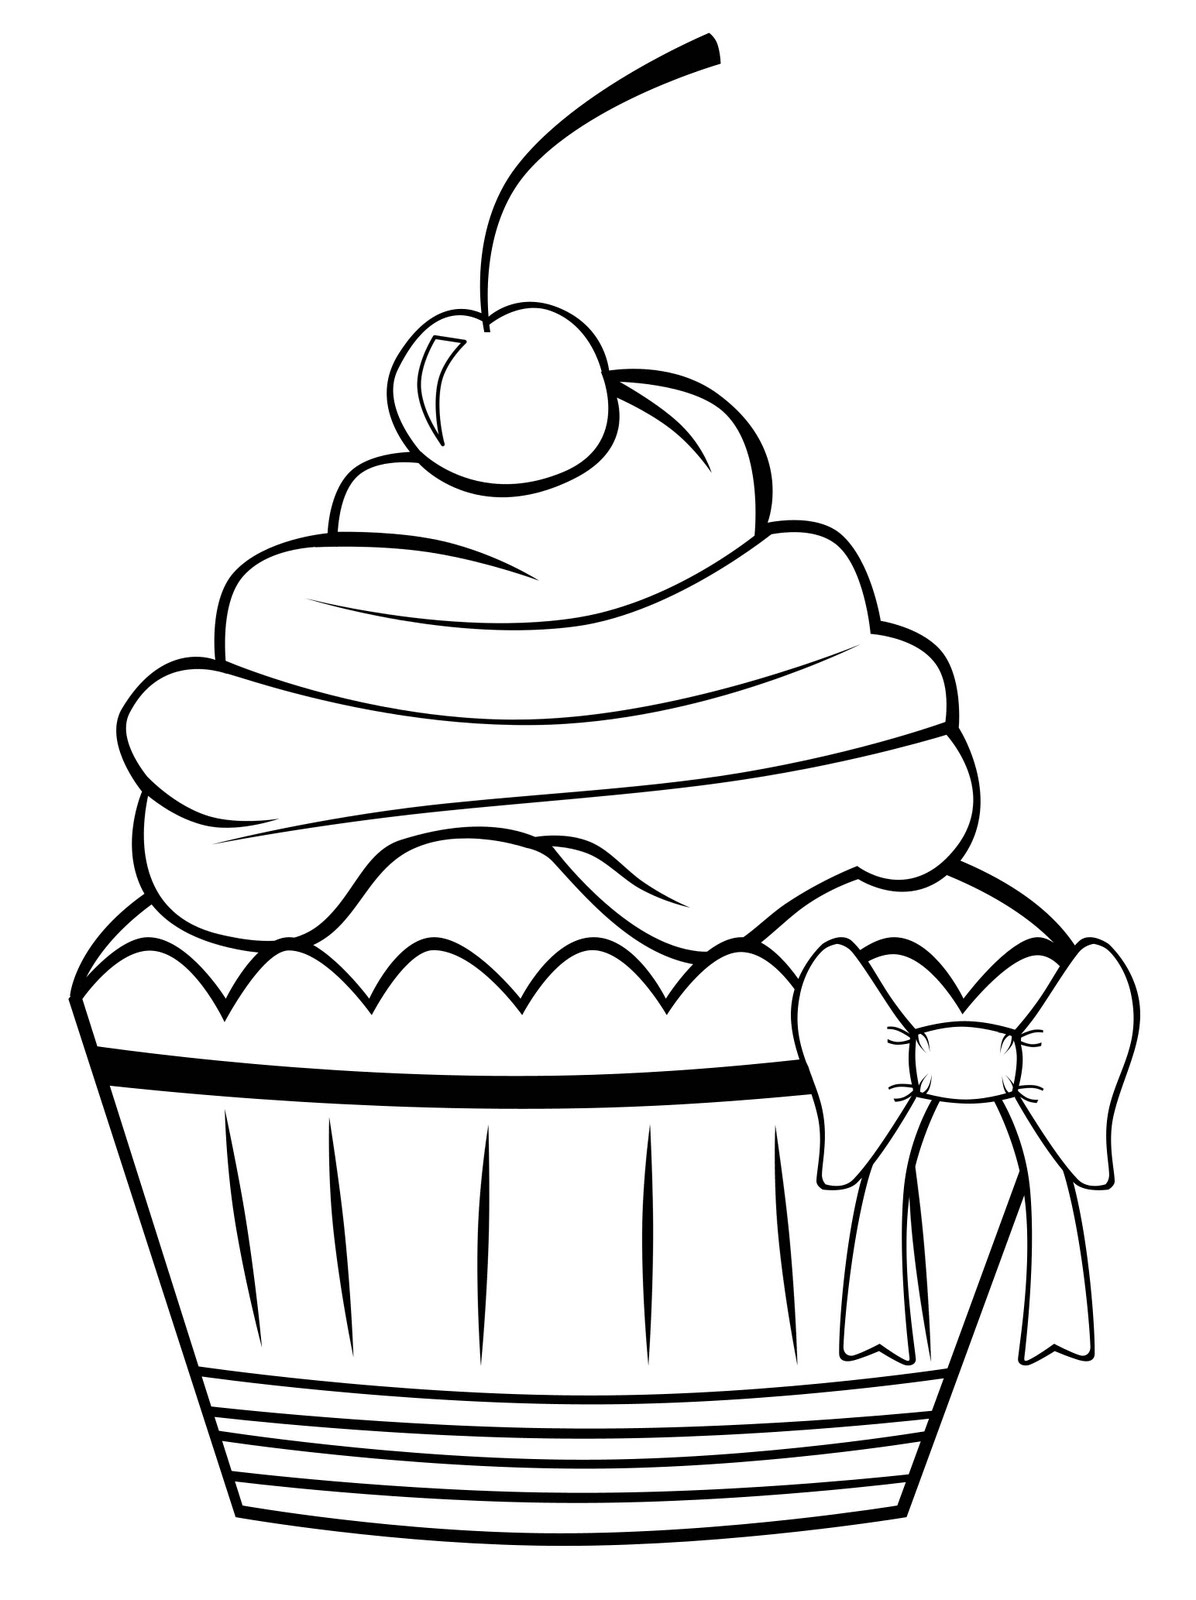 Cup Cake Coloring Pages For Preschoolers : Cupcakes Coloring Pages - Free Printable Pictures Coloring ...